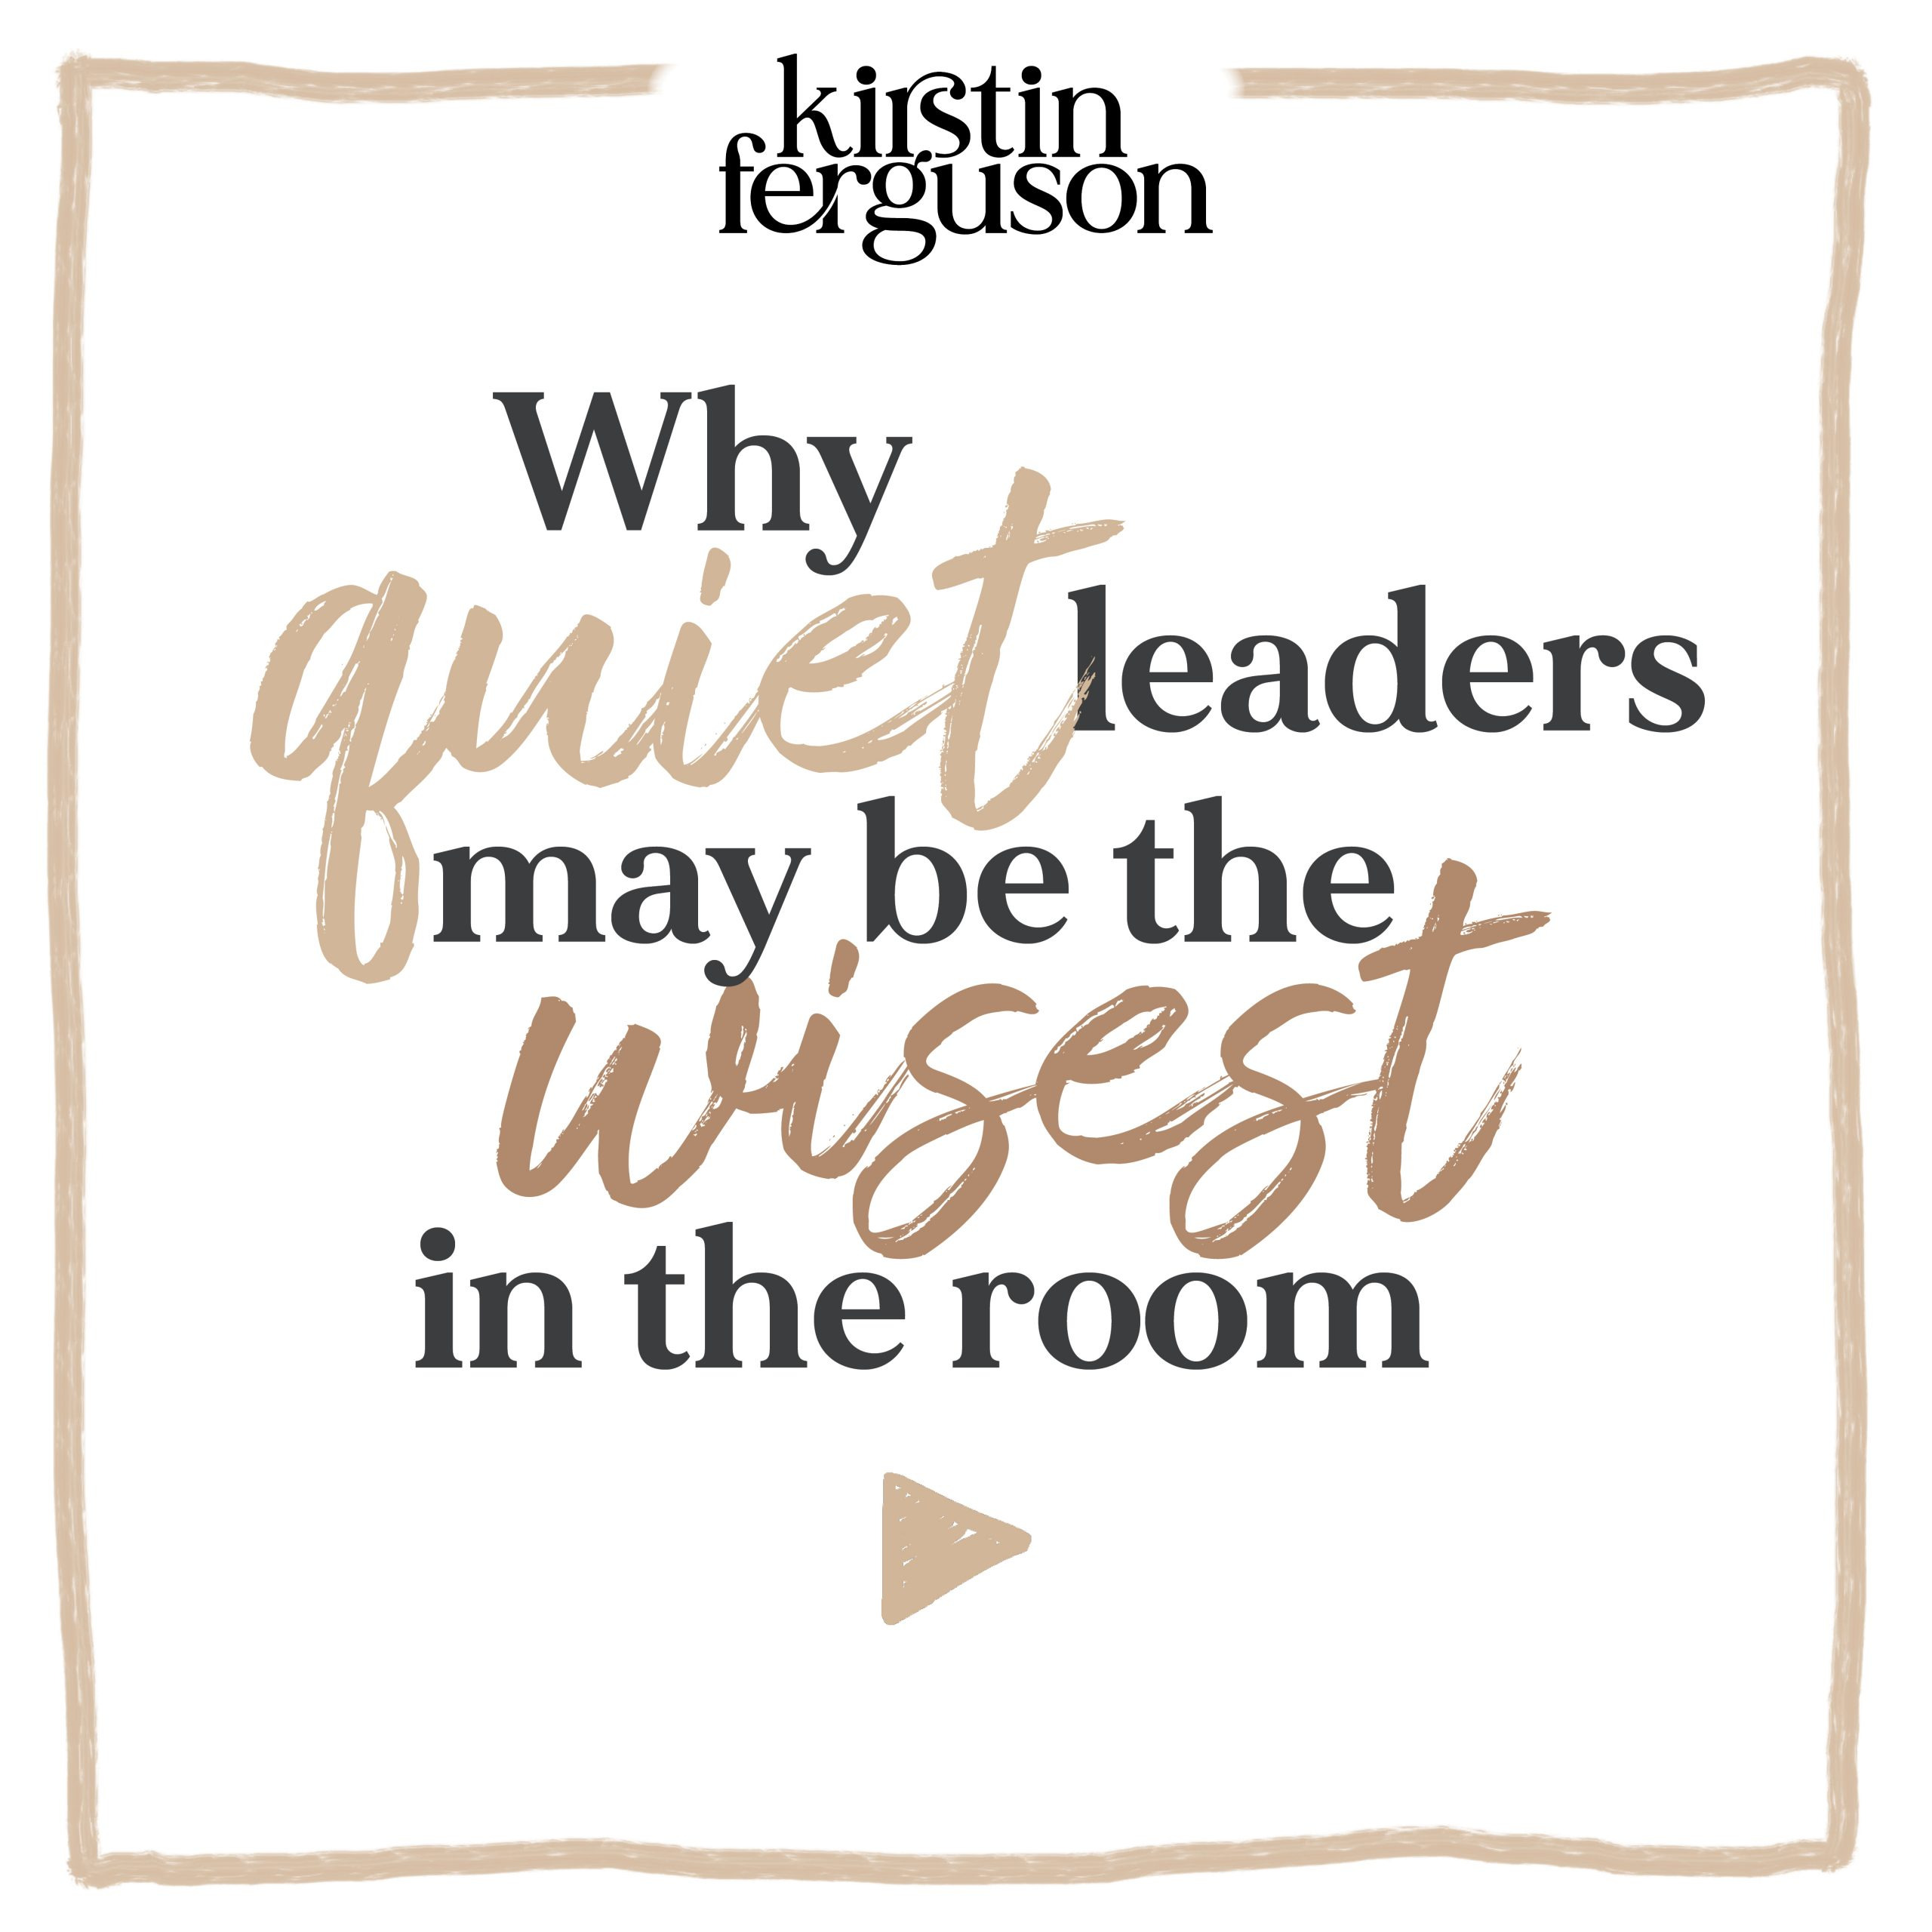 Why quiet leaders may be the wisest in the room